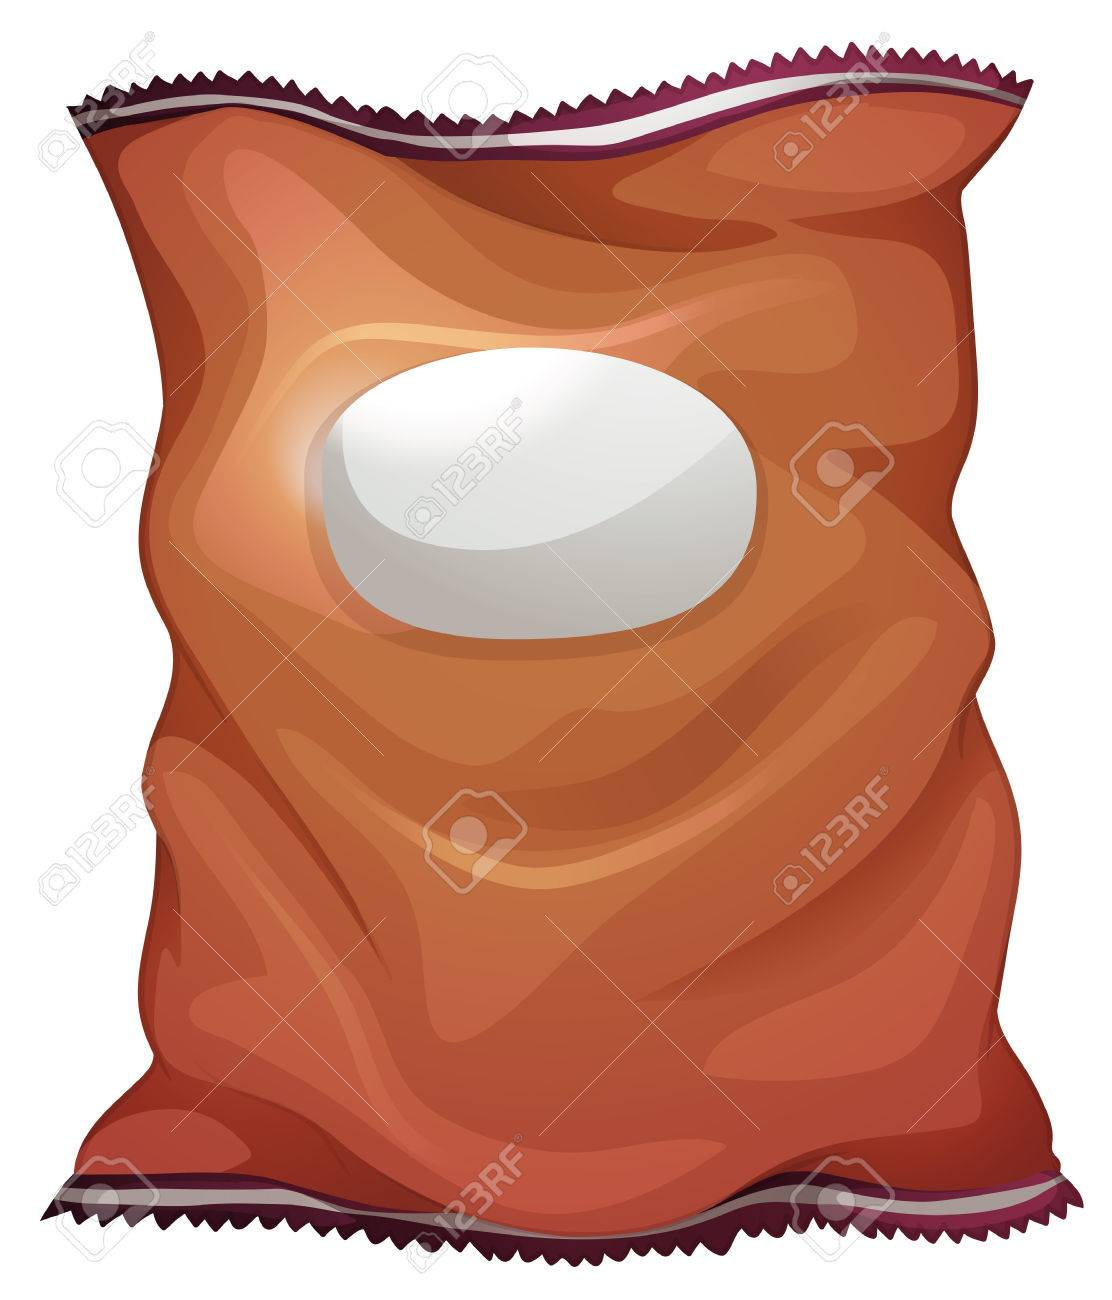 Illustration of a brown bag with an empty label on a white background Stock Vector - 29598337